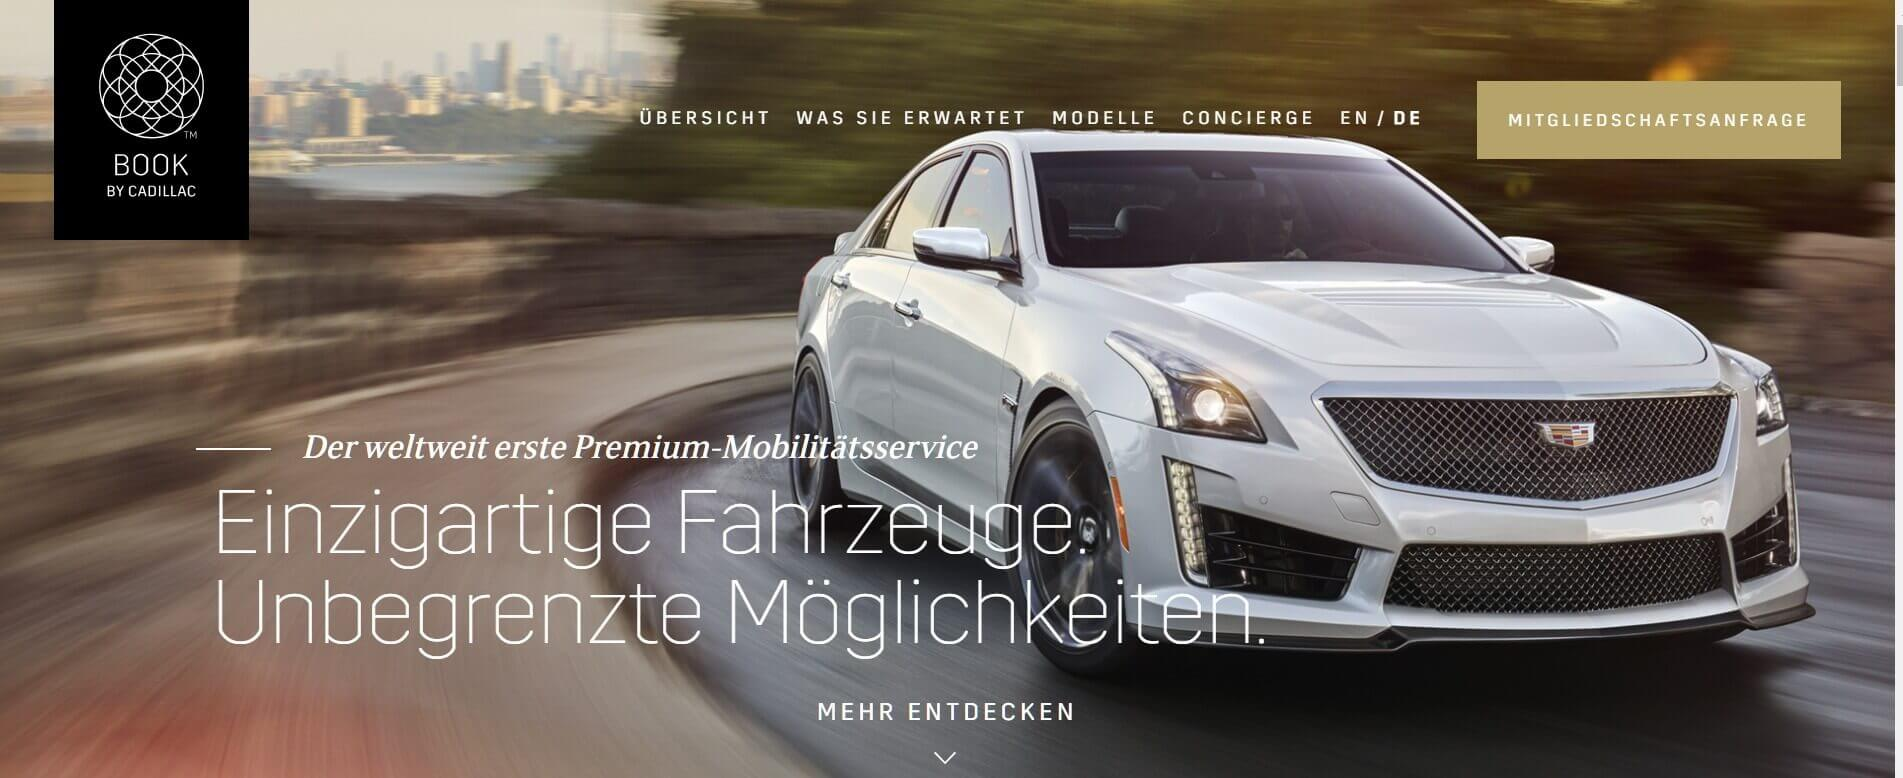 Auto Abo Book by Cadillac